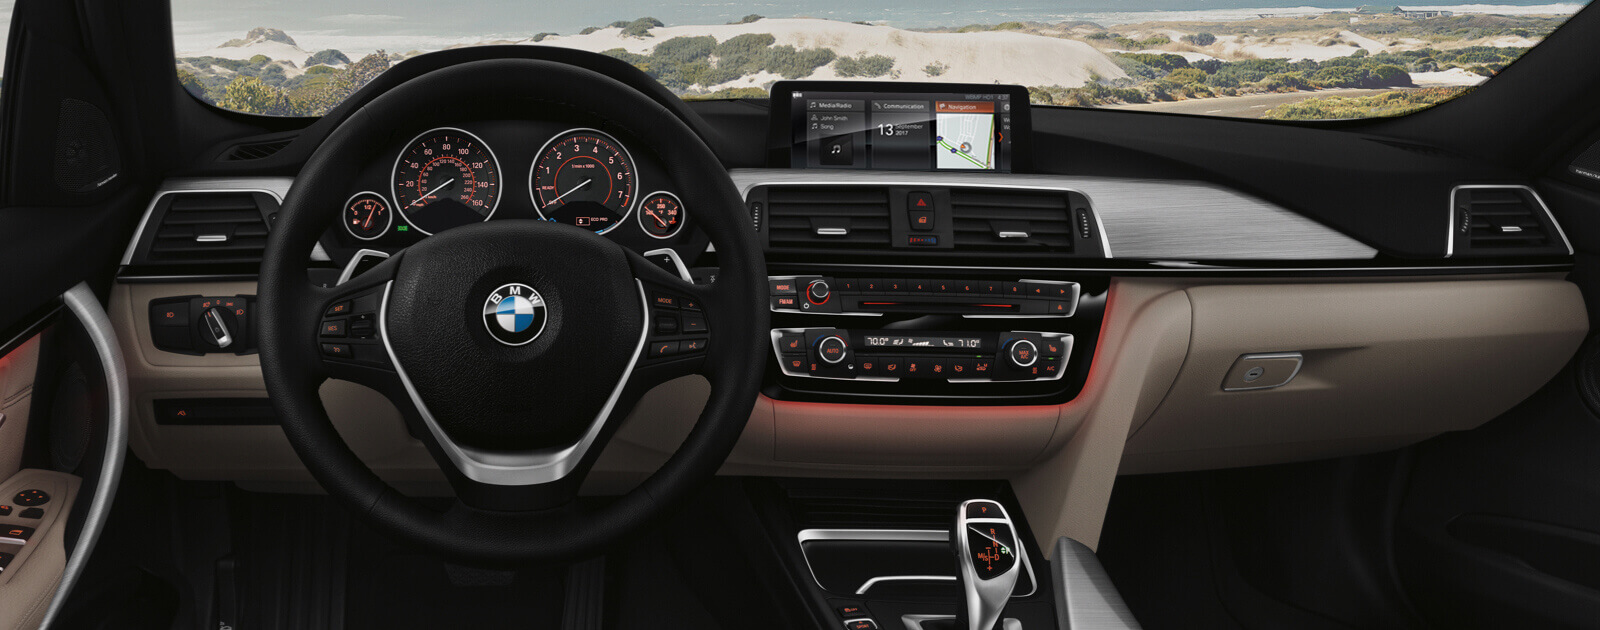 2018 BMW 3 Series Financing near Champaign, IL - BMW of